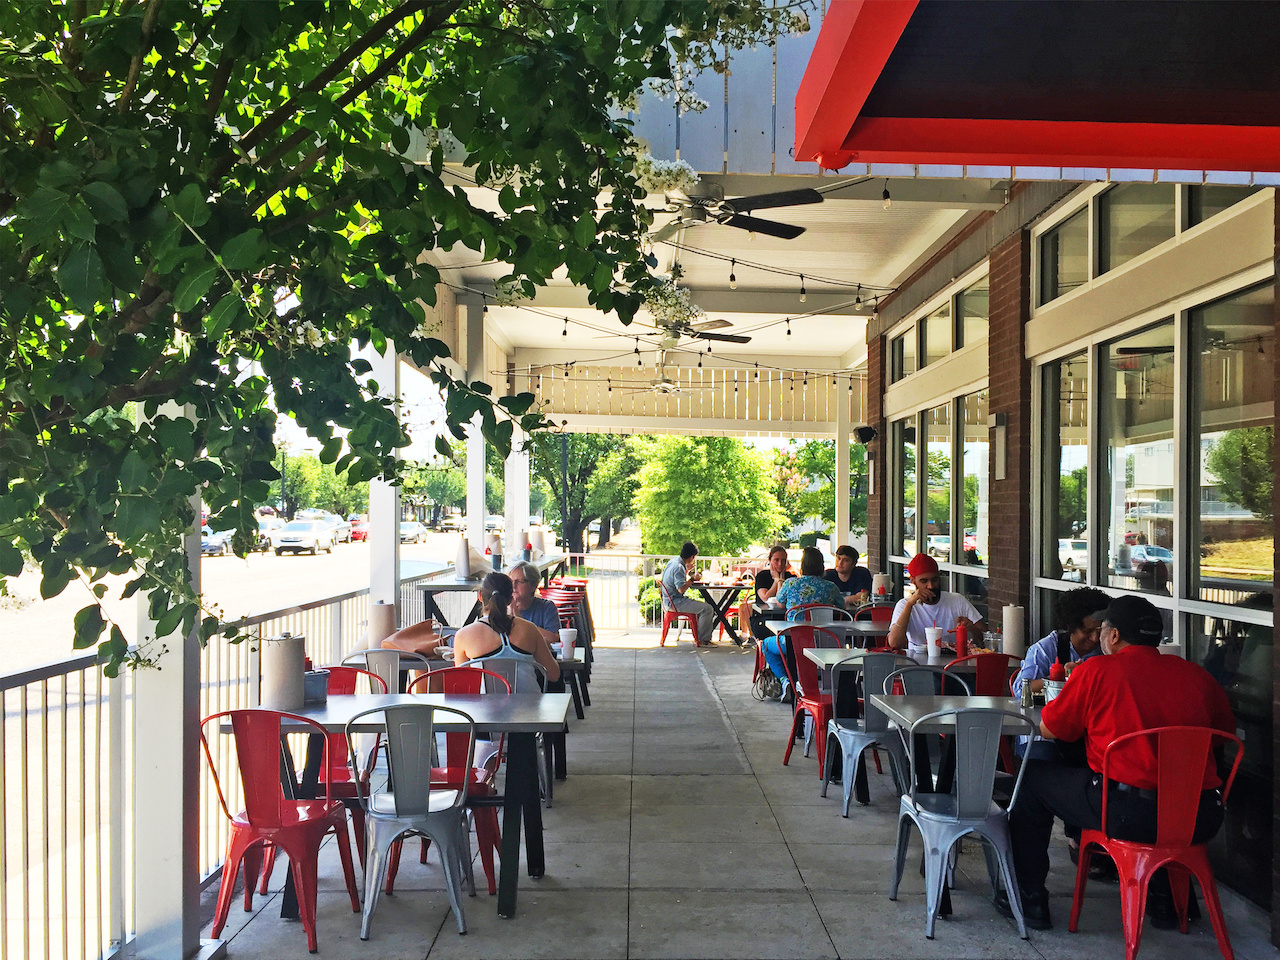 Hattie B's outside patio continues its comfortable and shared feeling.